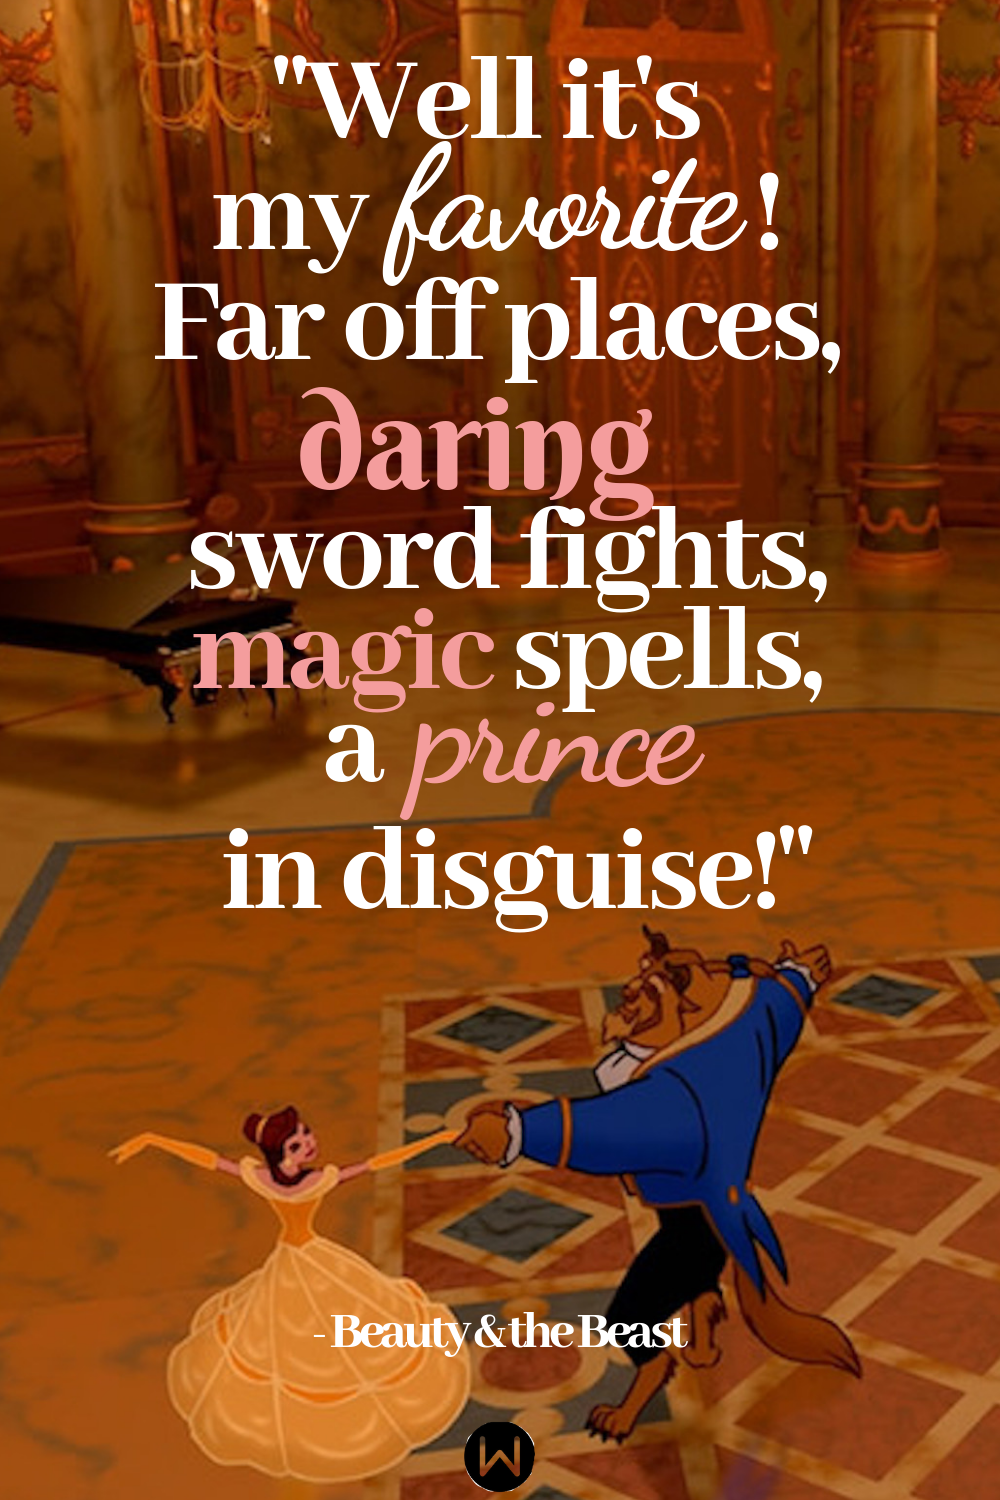 movies, beauty and the beast, Disney, quote